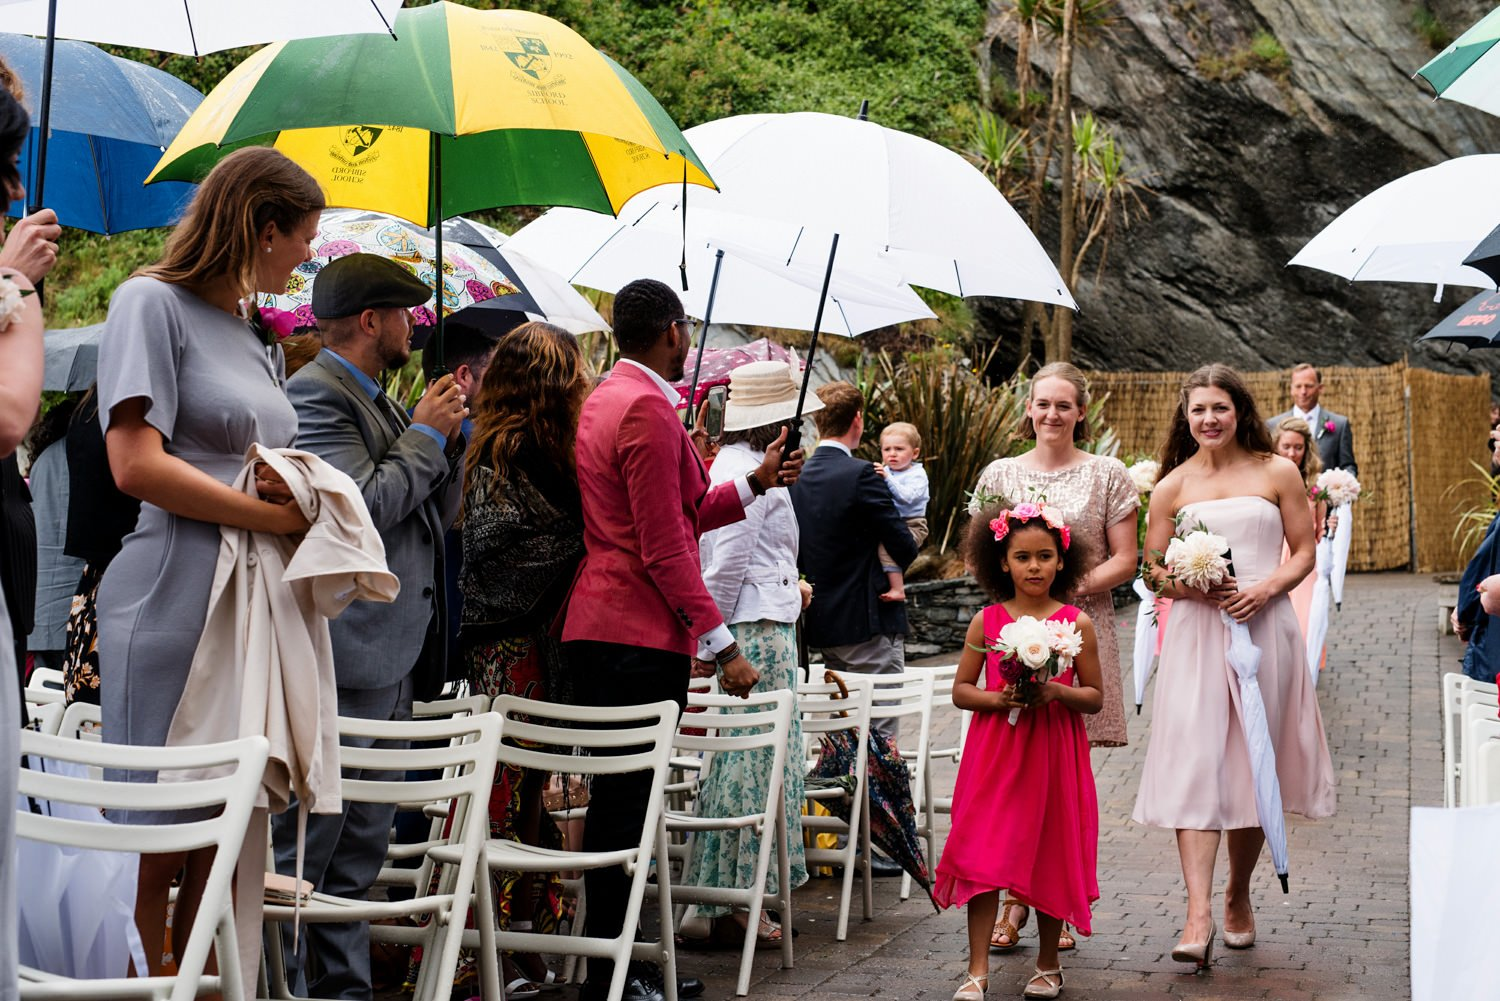 Rainy beach Devon wedding ceremony Babb Photo